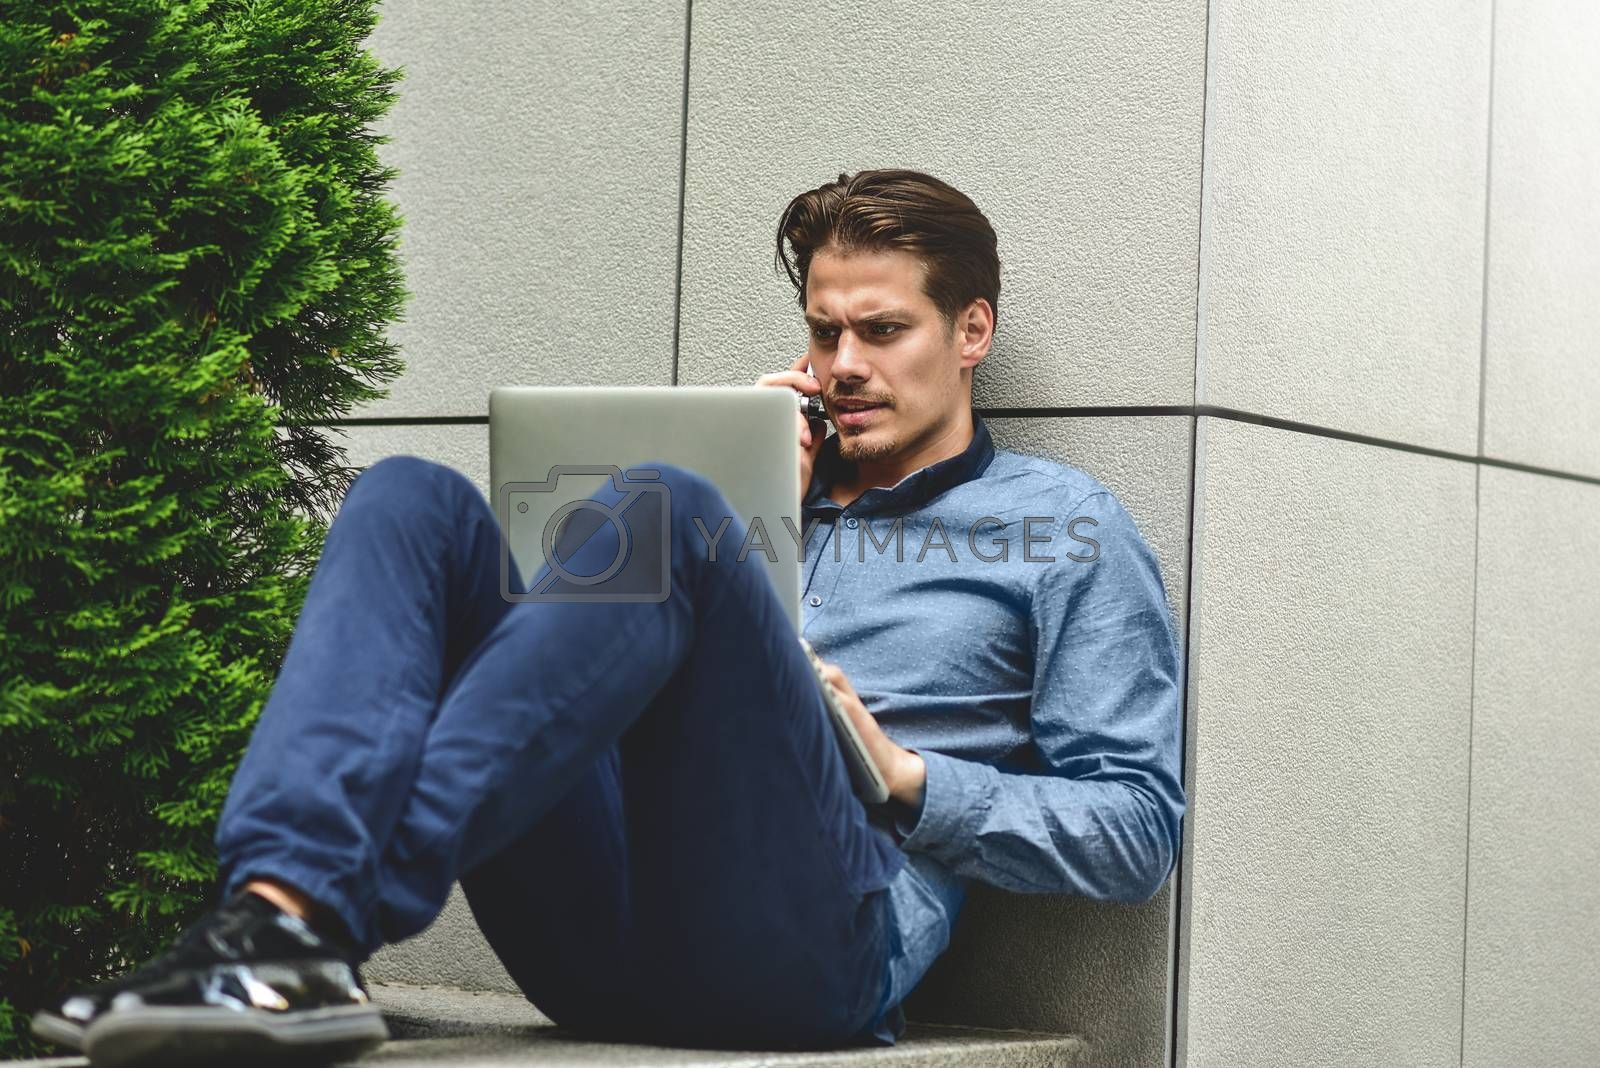 Young attractive guy who is smiling looking at his laptop screen during video call. Young man using laptop.